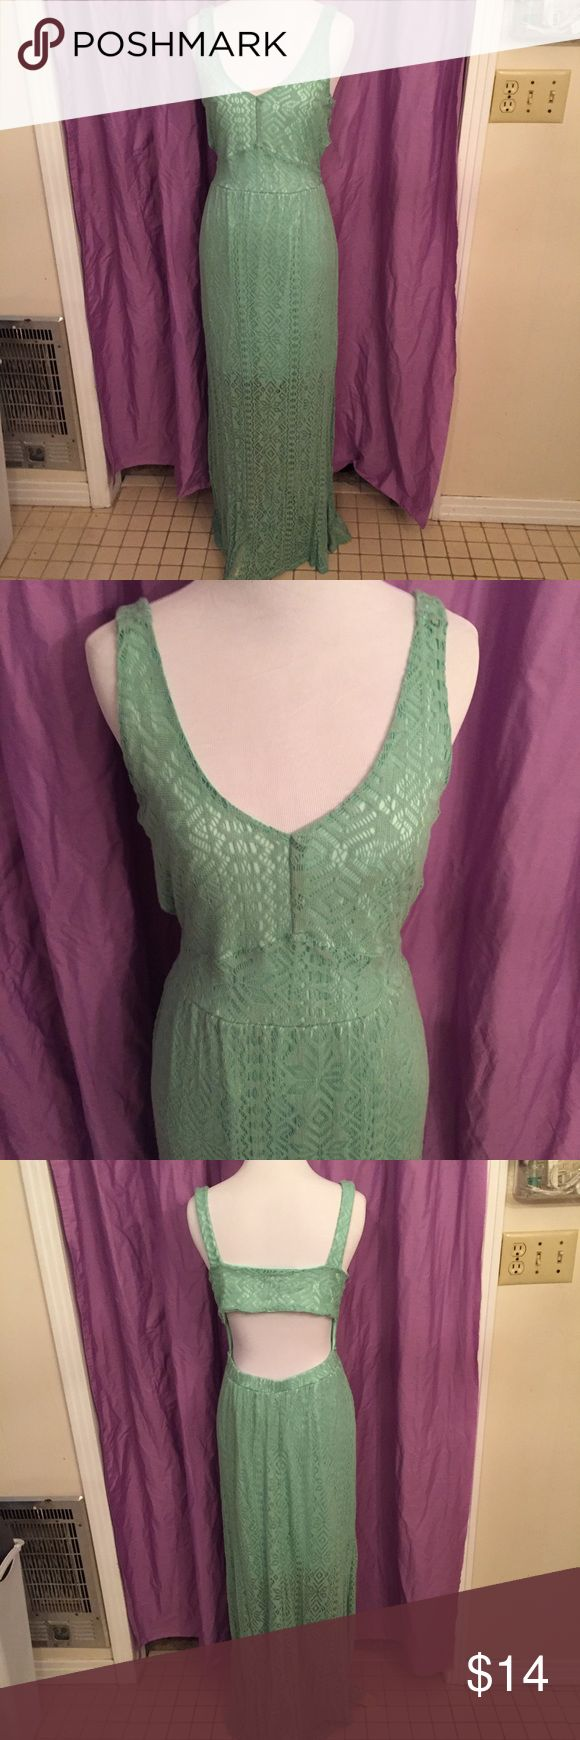 Ocean Drive Mint Green lace backless maxi dress Mint Green Lace Maxi Dress with cut out back Ocean Drive. Size large in juniors. In good condition. Make an offer or a bundle! Ocean Drive Dresses Maxi